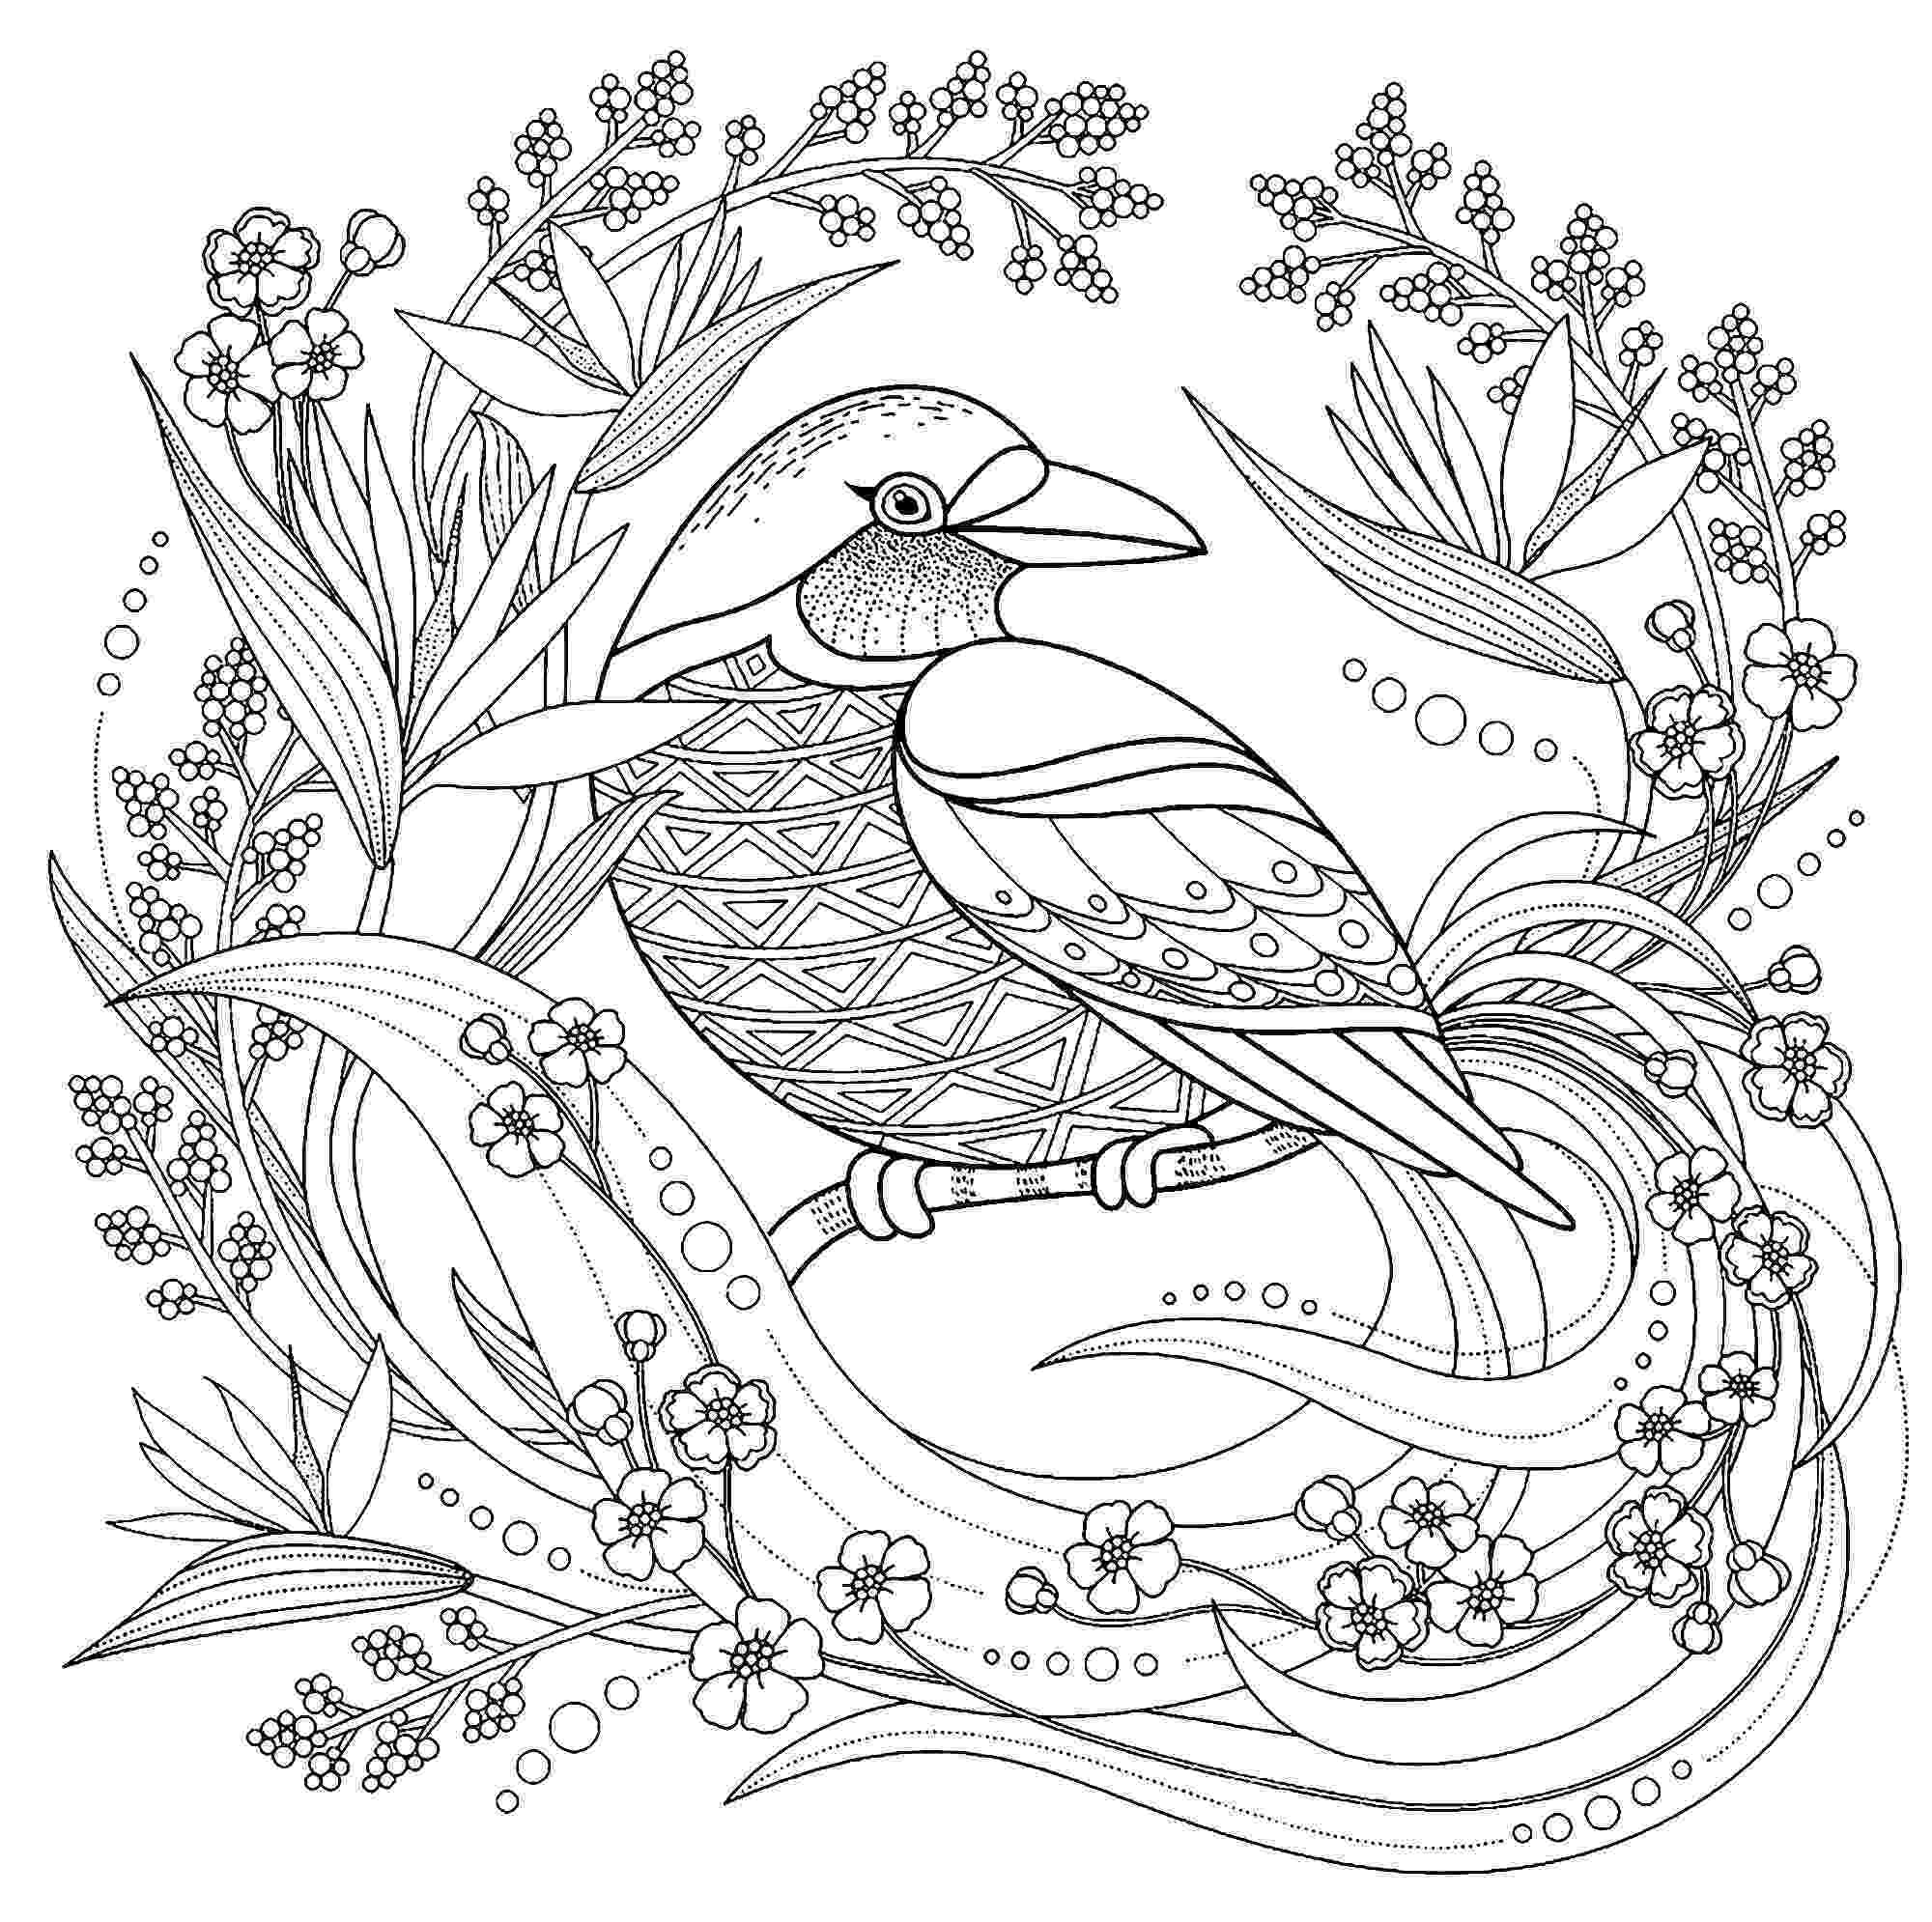 bird coloring pages to print template bird coloring pages bird template coloring pages coloring bird print to pages